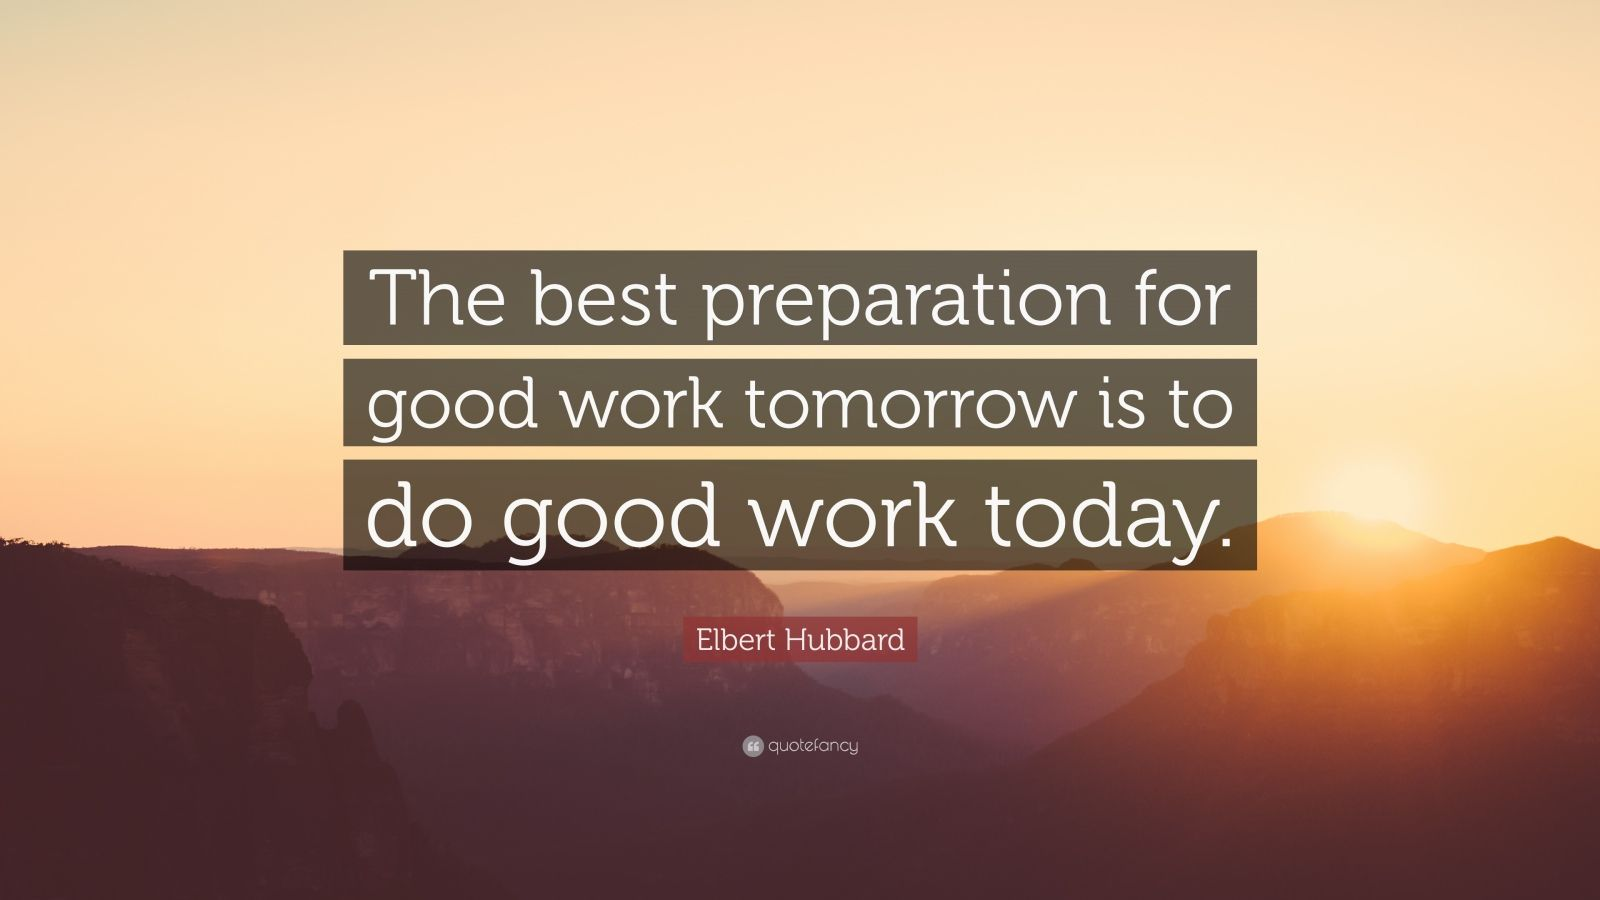 The Best Preparation For Tomorrow Is Doing Your Best Today: Business Quotes (52 Wallpapers)